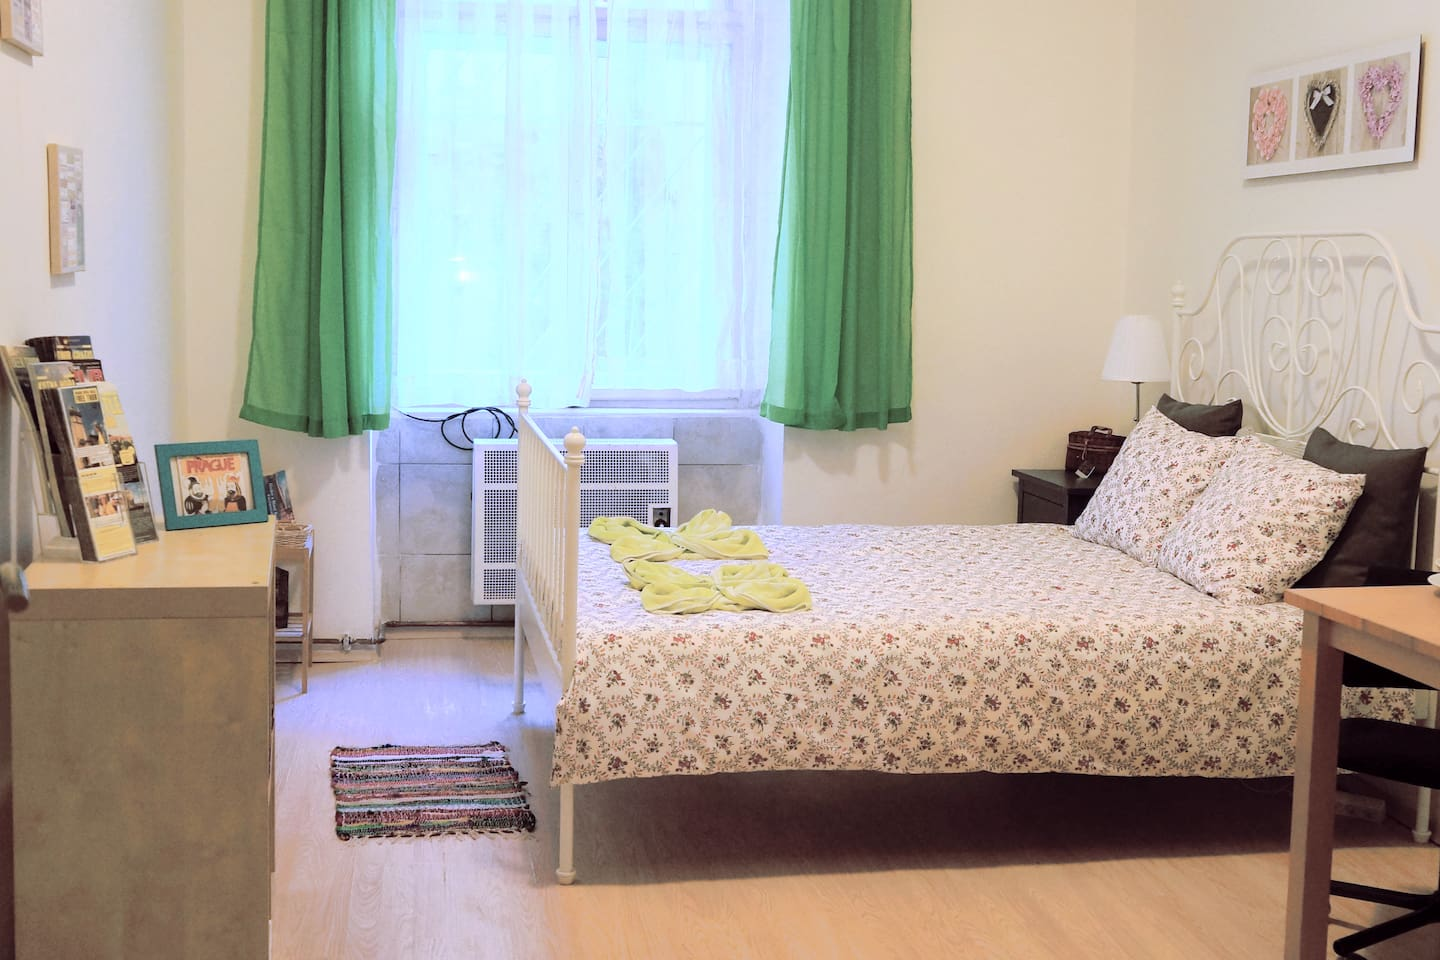 Here it is!  A private apartment in the center of Prague fully equipped, close to everything and easy to get to.